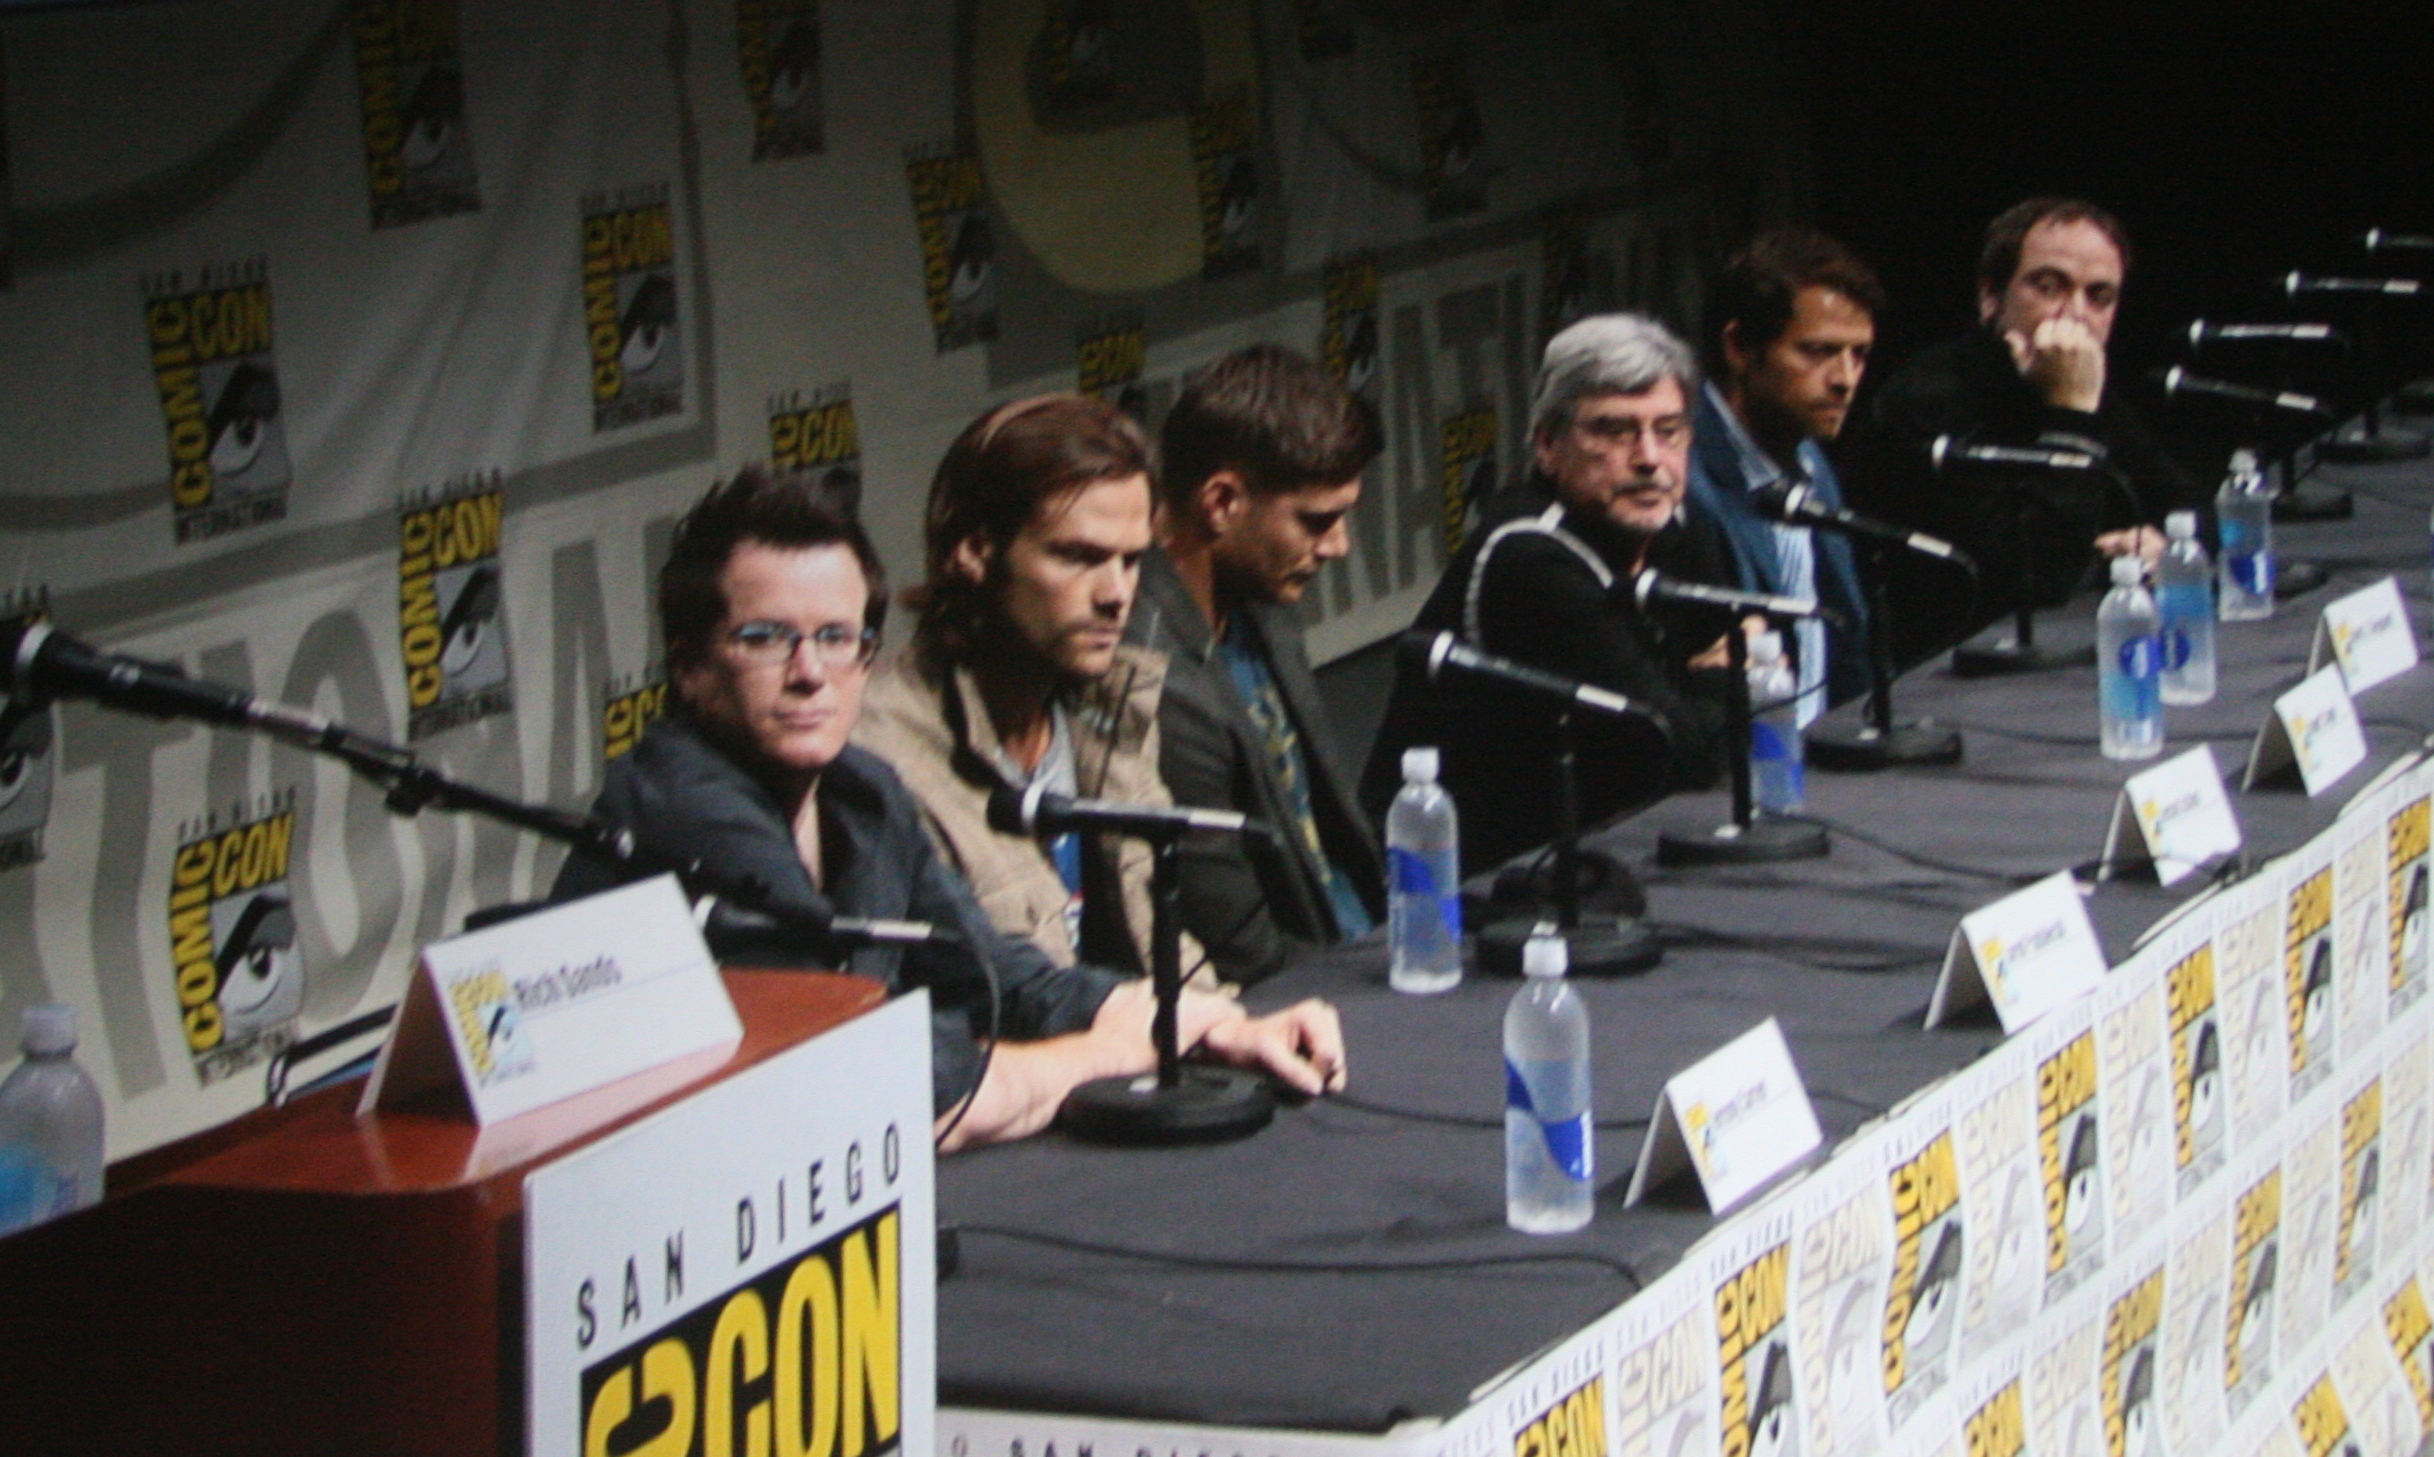 Supernatural at San Diego Comic Con